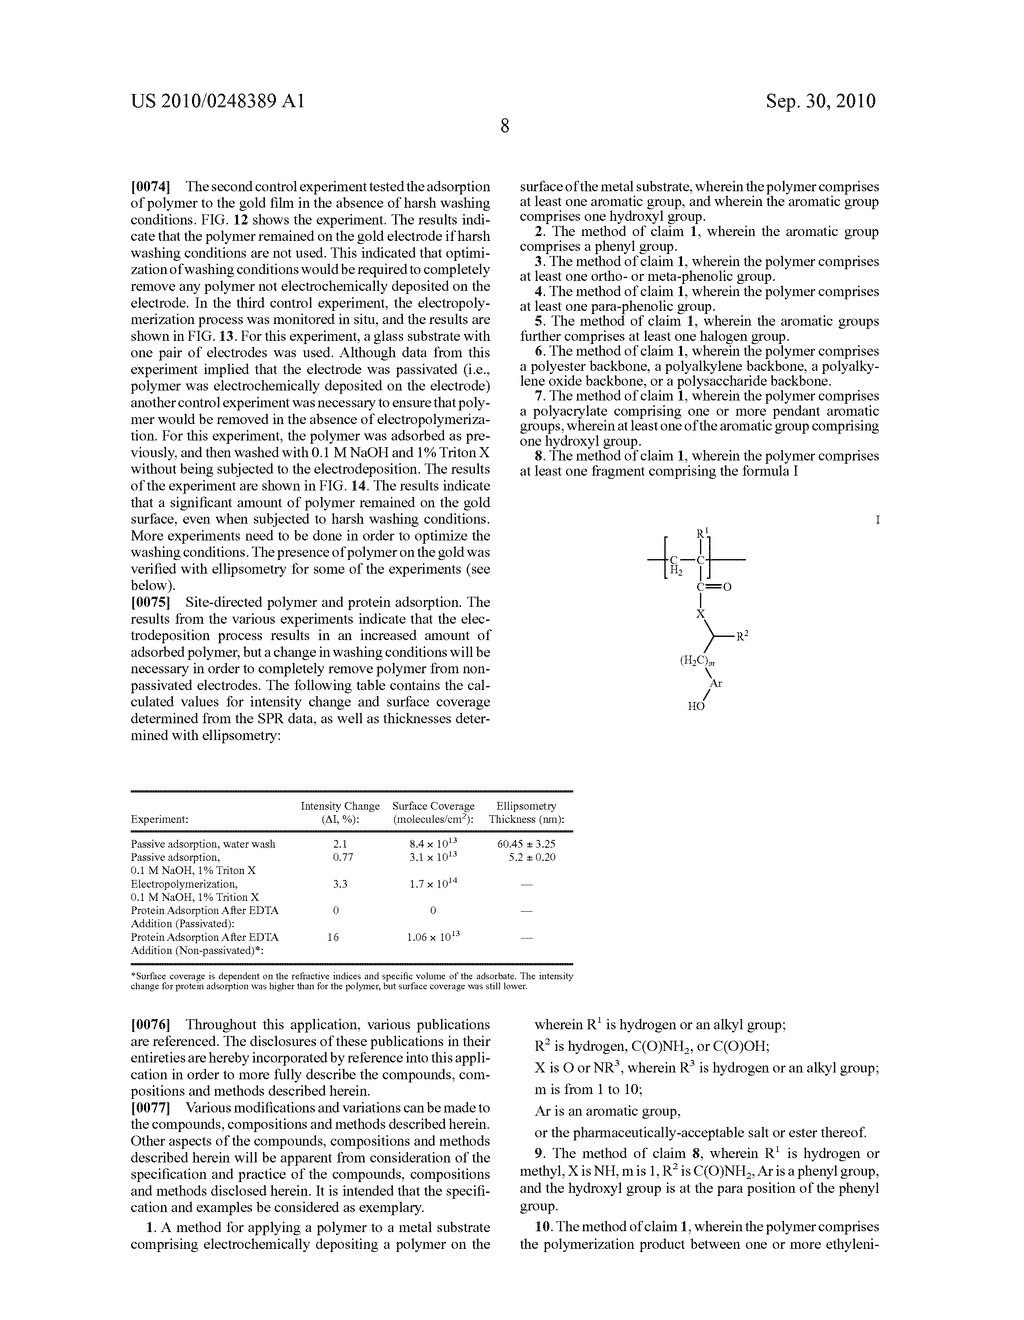 ELECTROCHEMICAL DEPOSITION OF POLYMERS ON METAL SUBSTRATES - diagram, schematic, and image 17